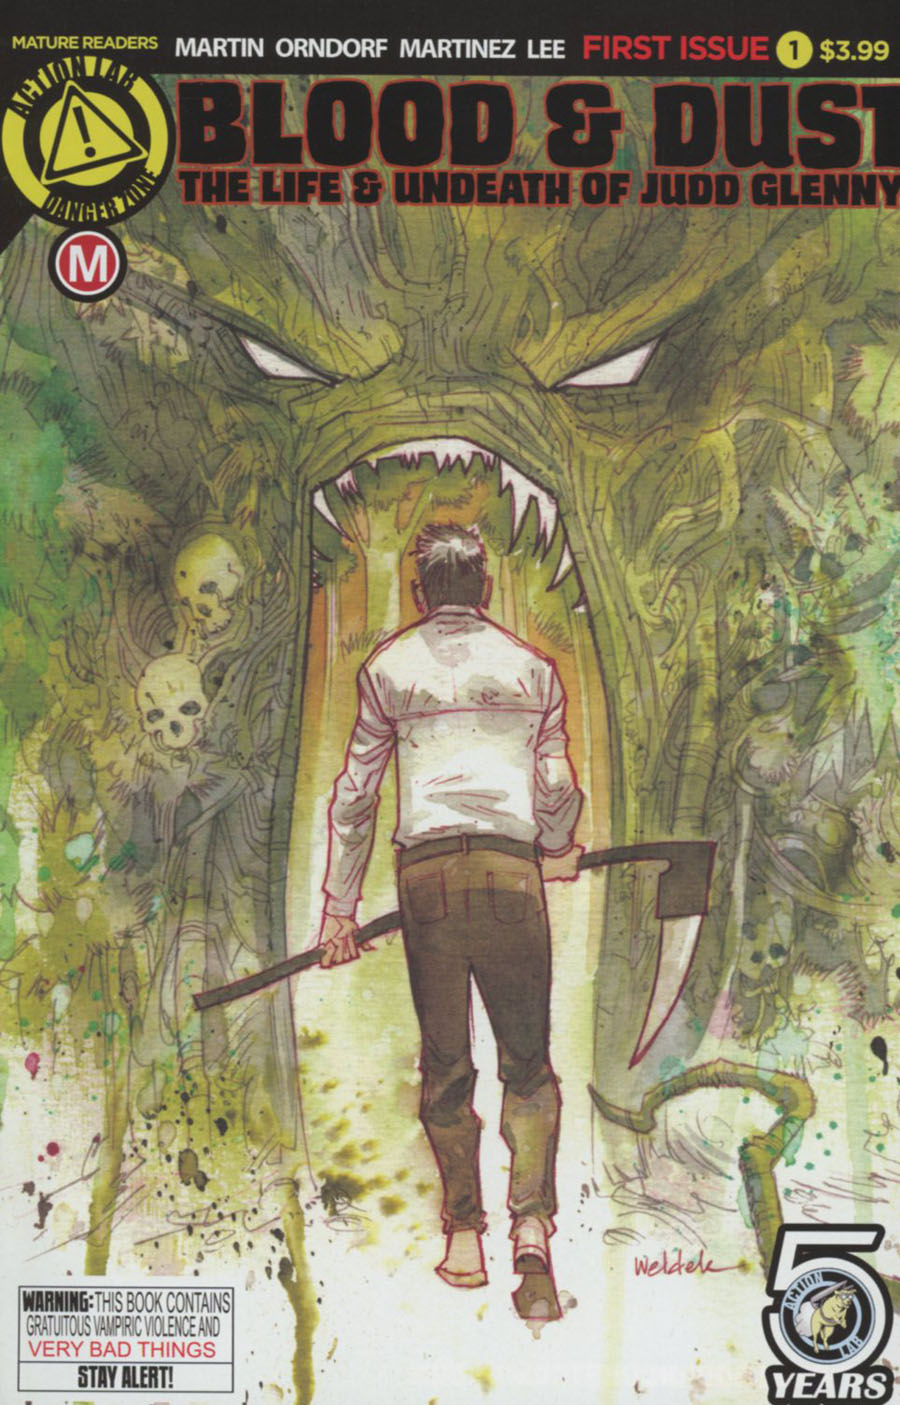 Blood & Dust Life & Undeath Of Judd Glenny #1 Cover A Regular Brett Weldele Cover